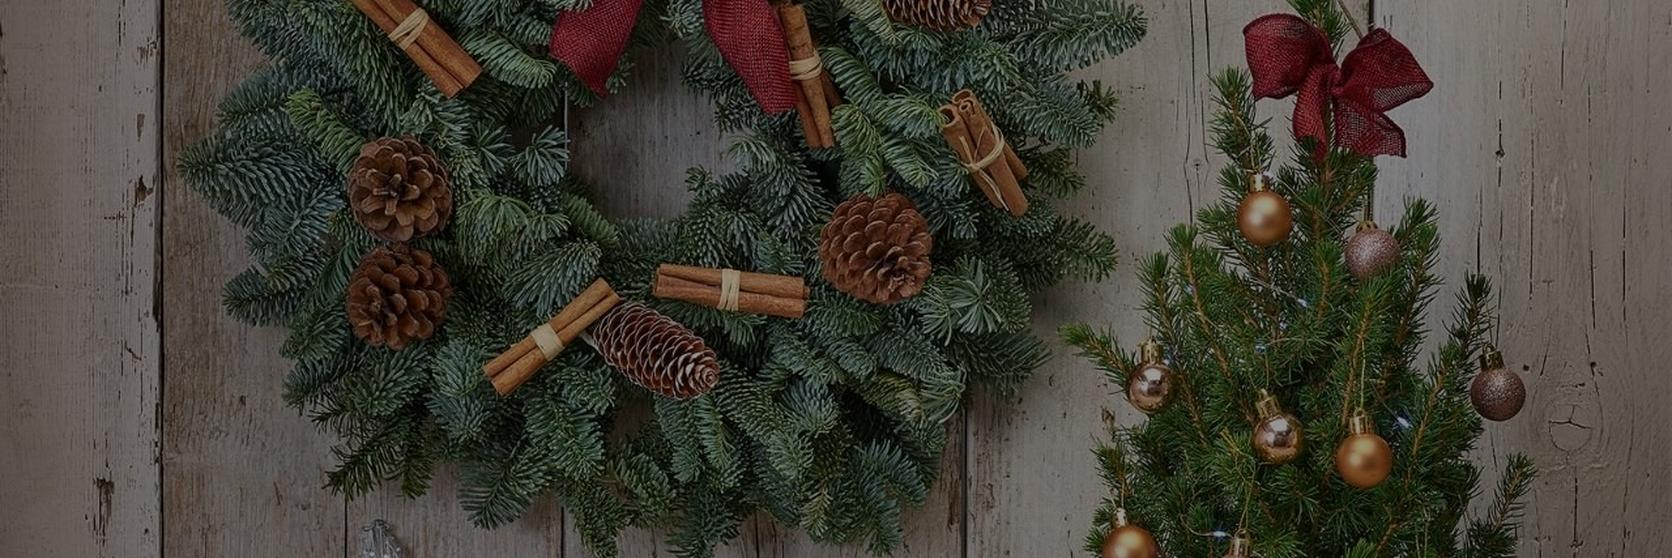 10-alternative-christmas-trees-small-spaces-1